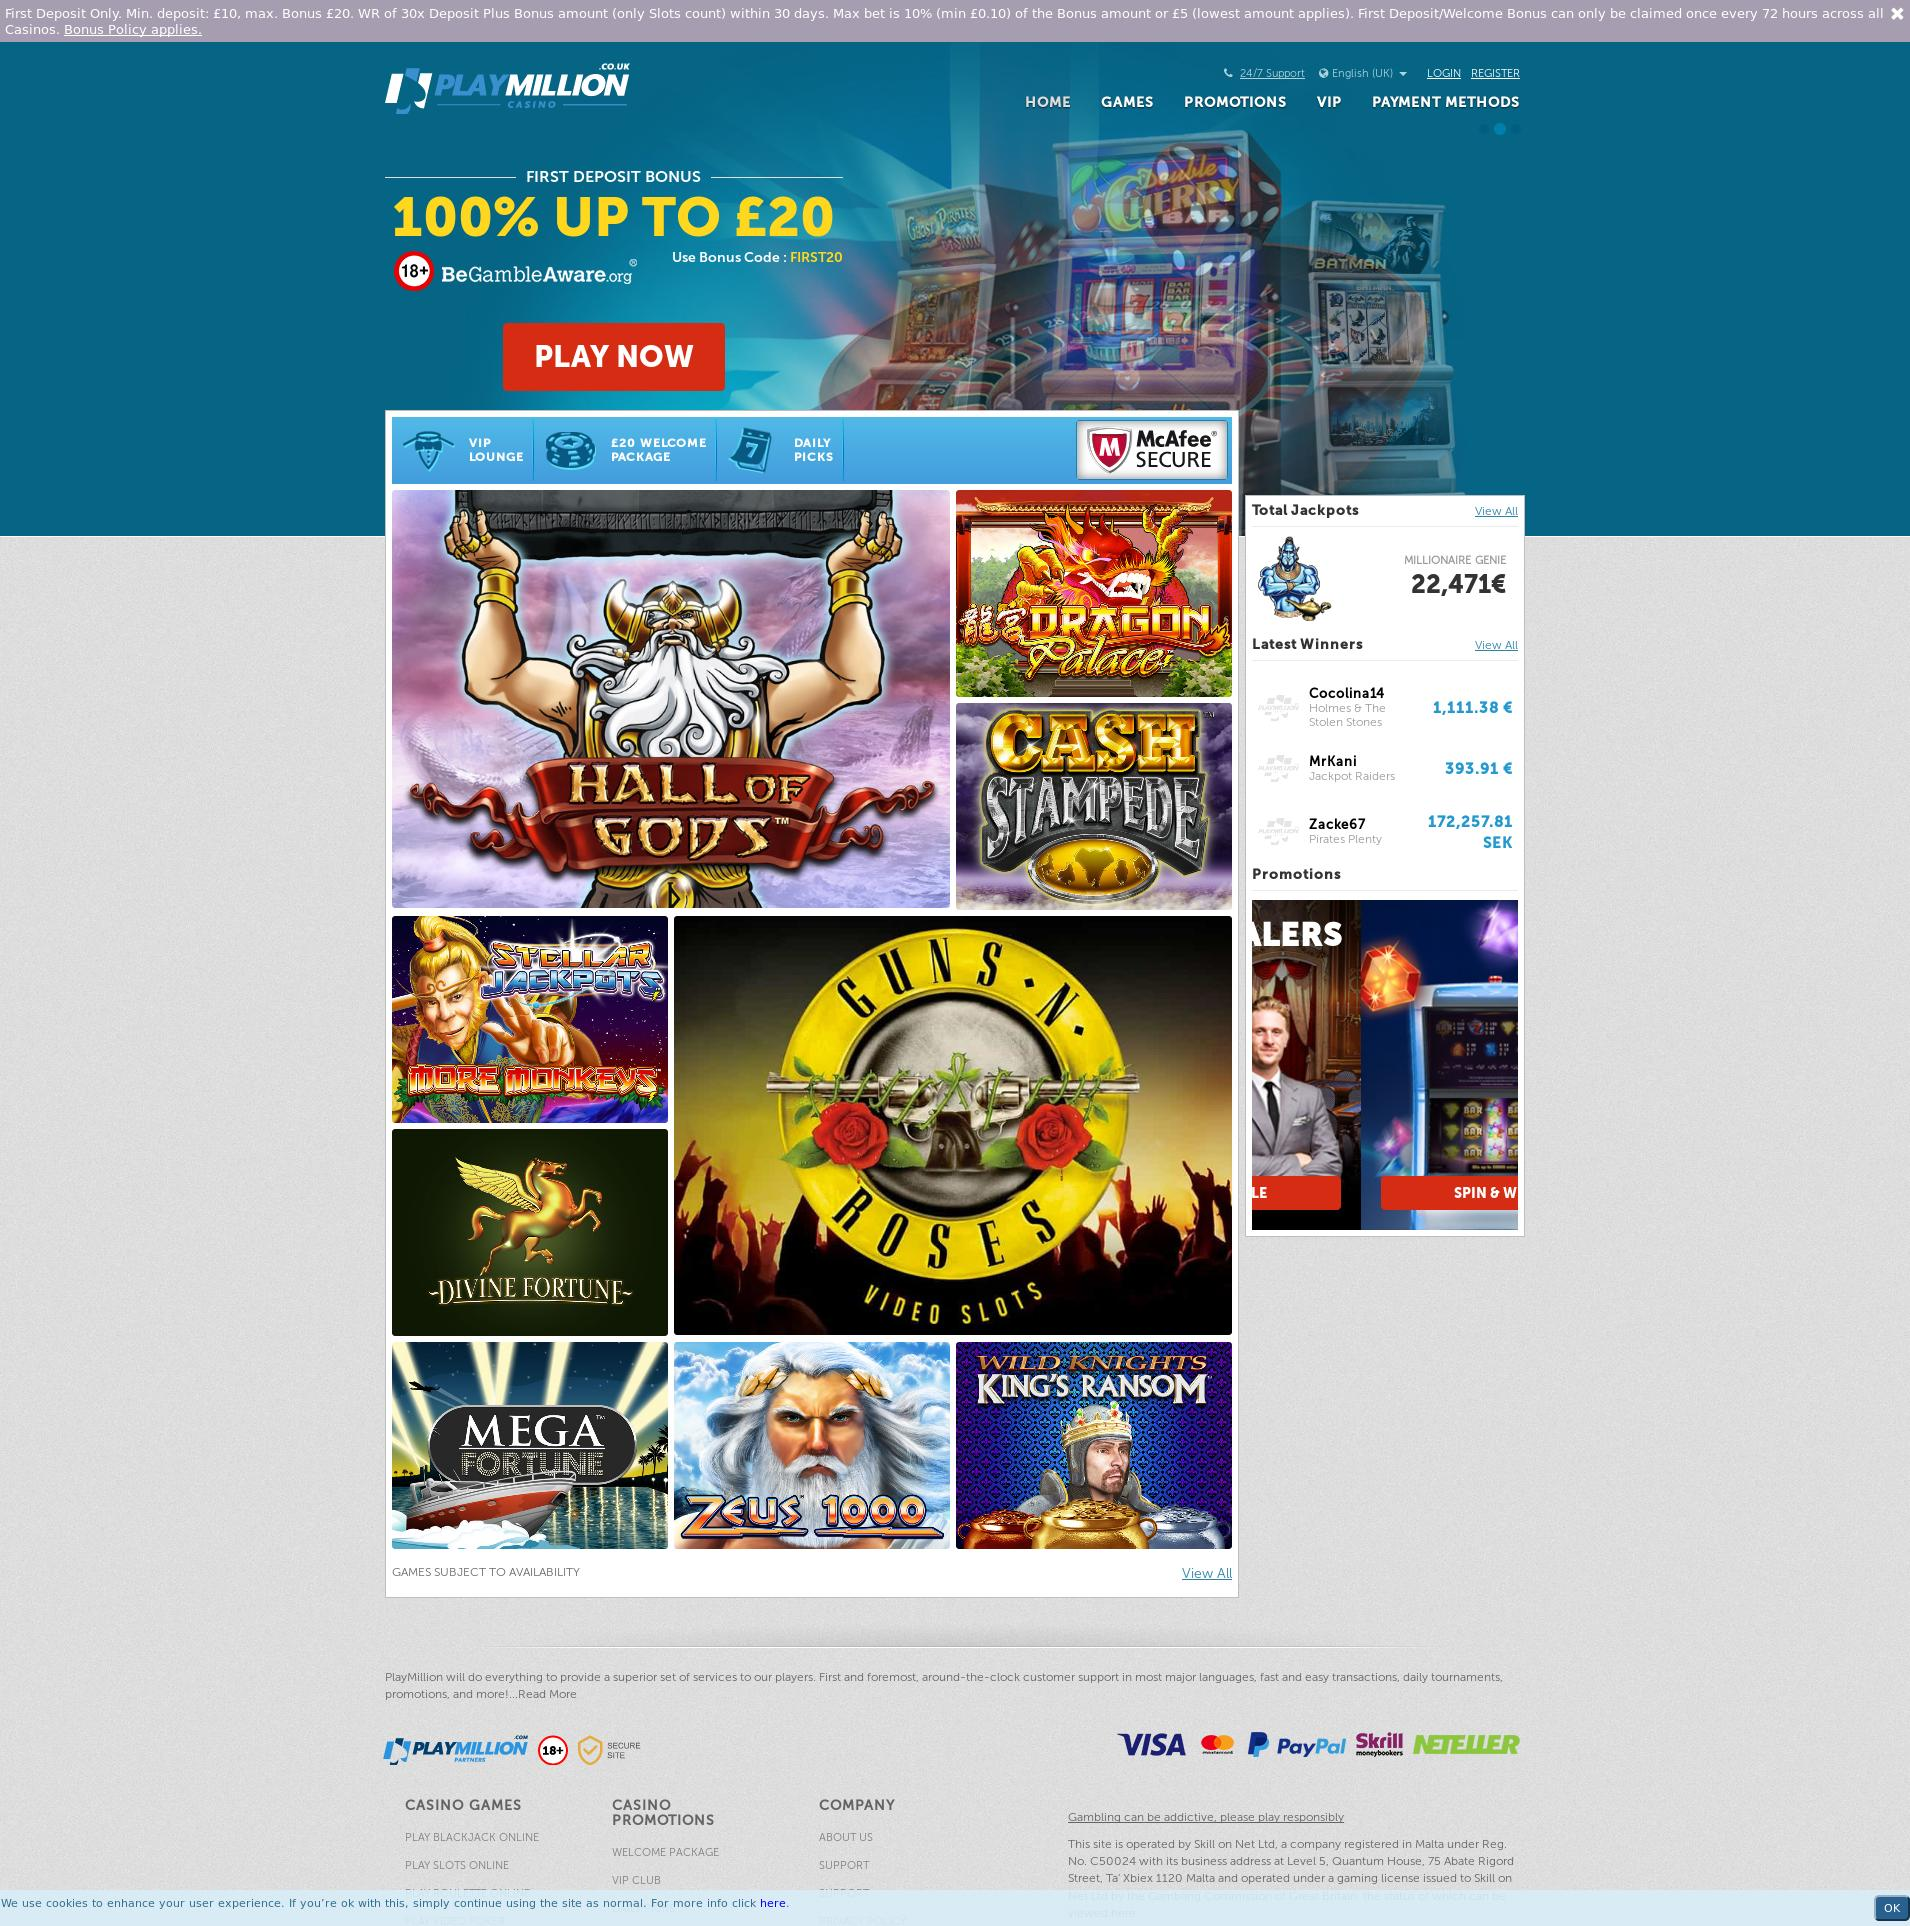 Casino screen Lobby 2019-08-19 for United Kingdom